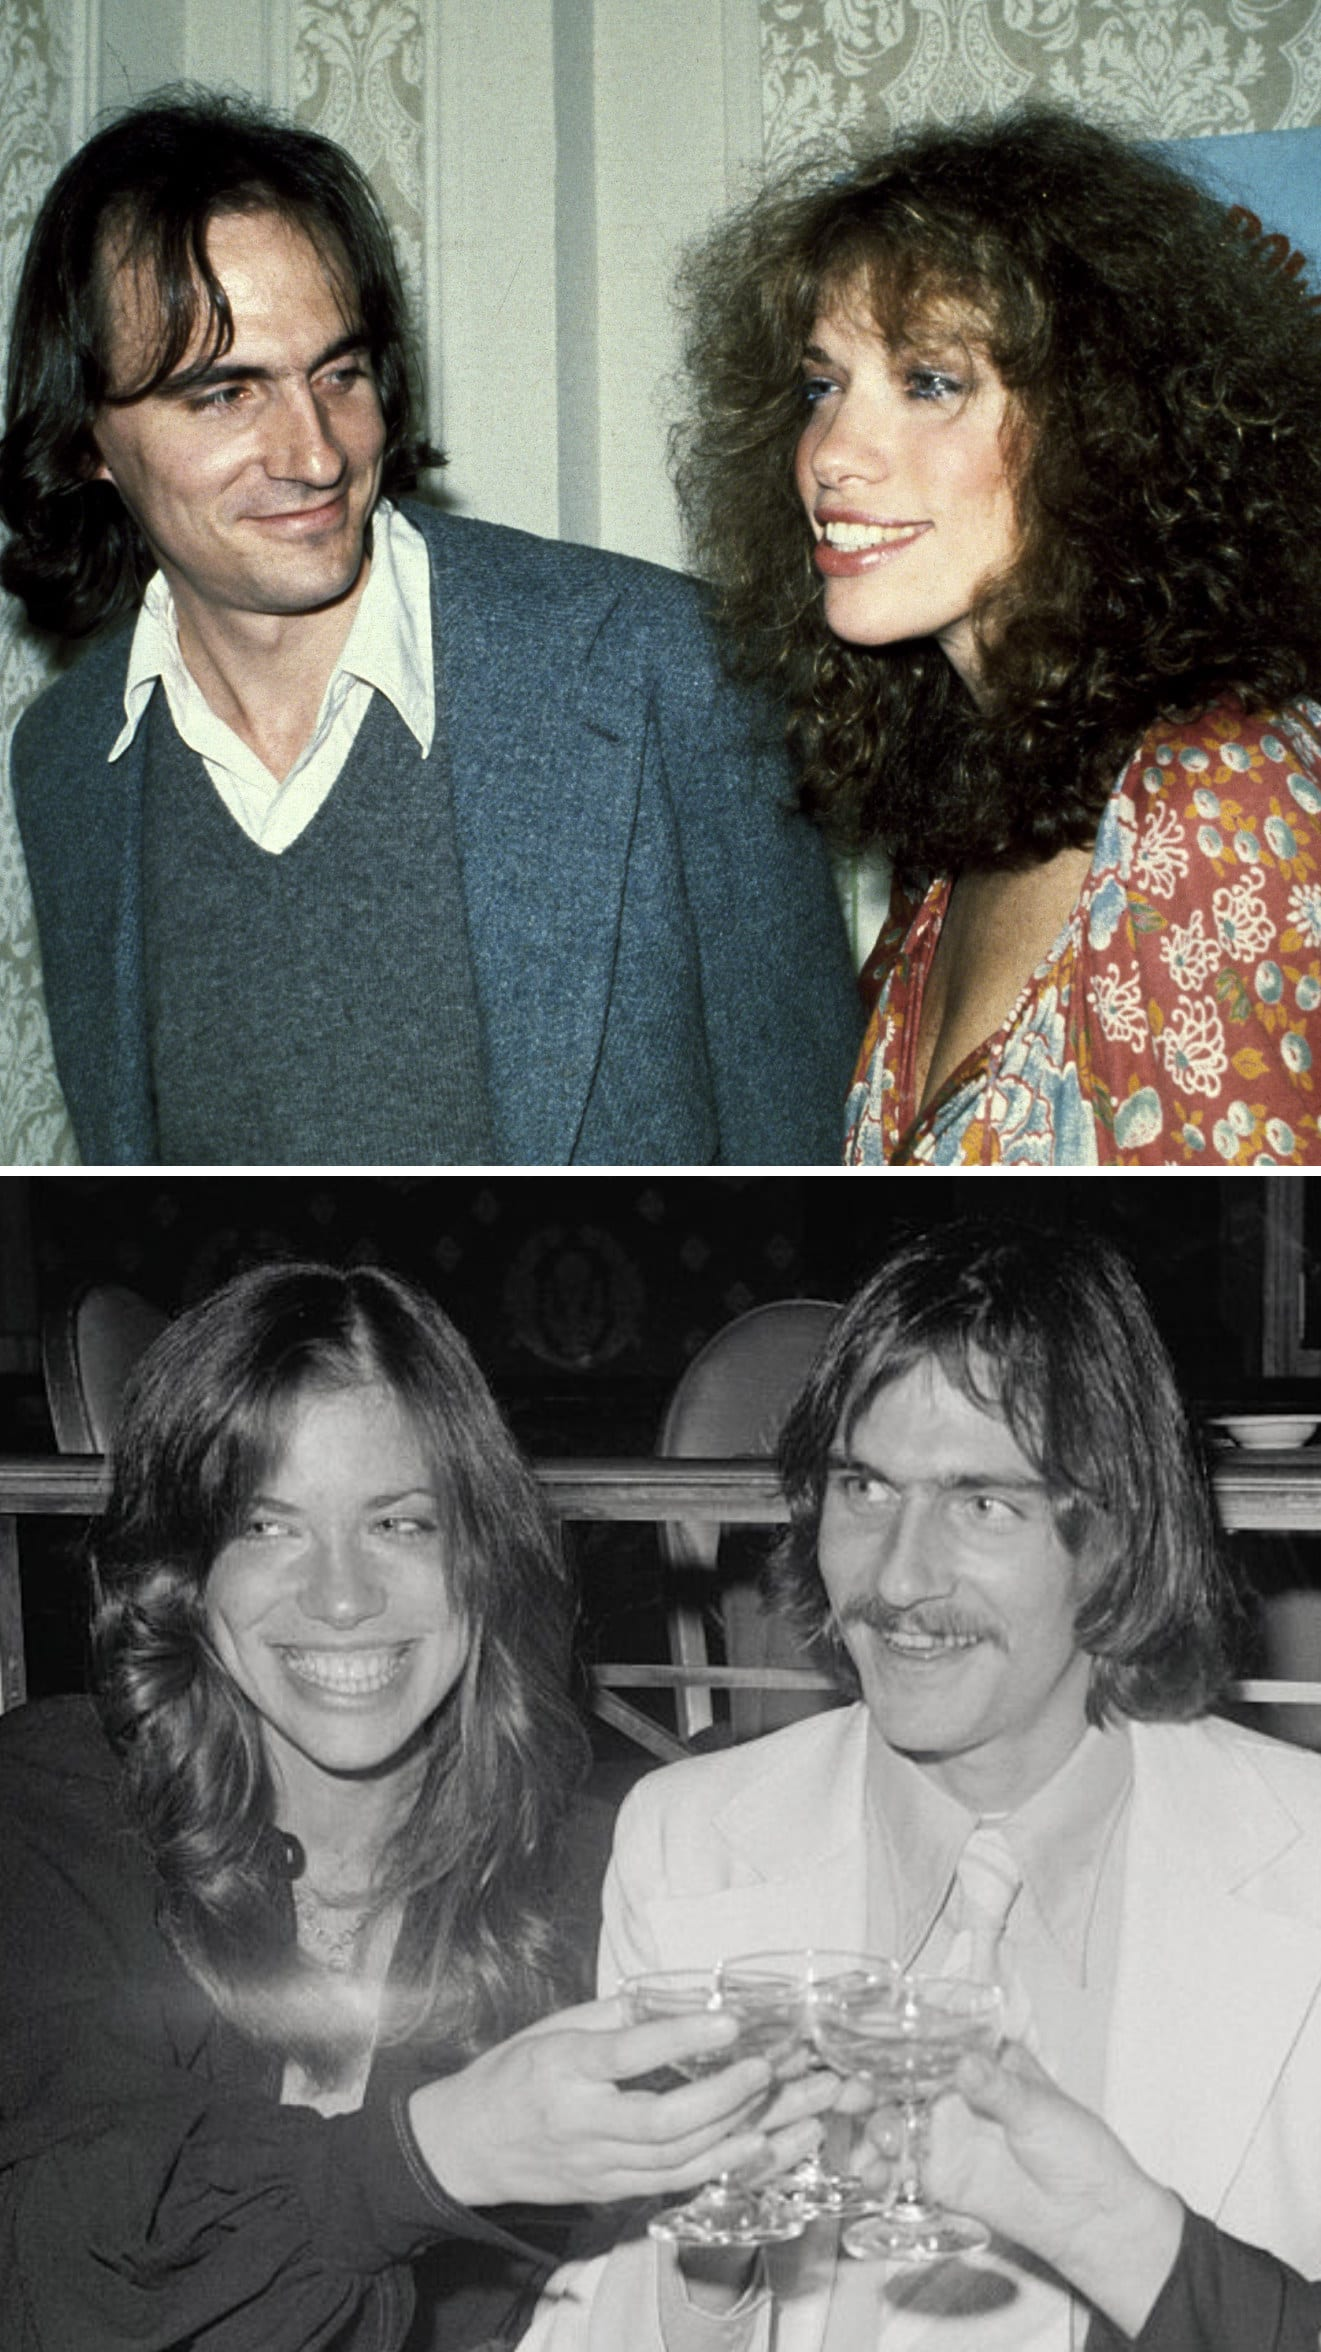 Simon and Taylor in New York City in 1979; Simon and Taylor drinking champagne at an event in 1973